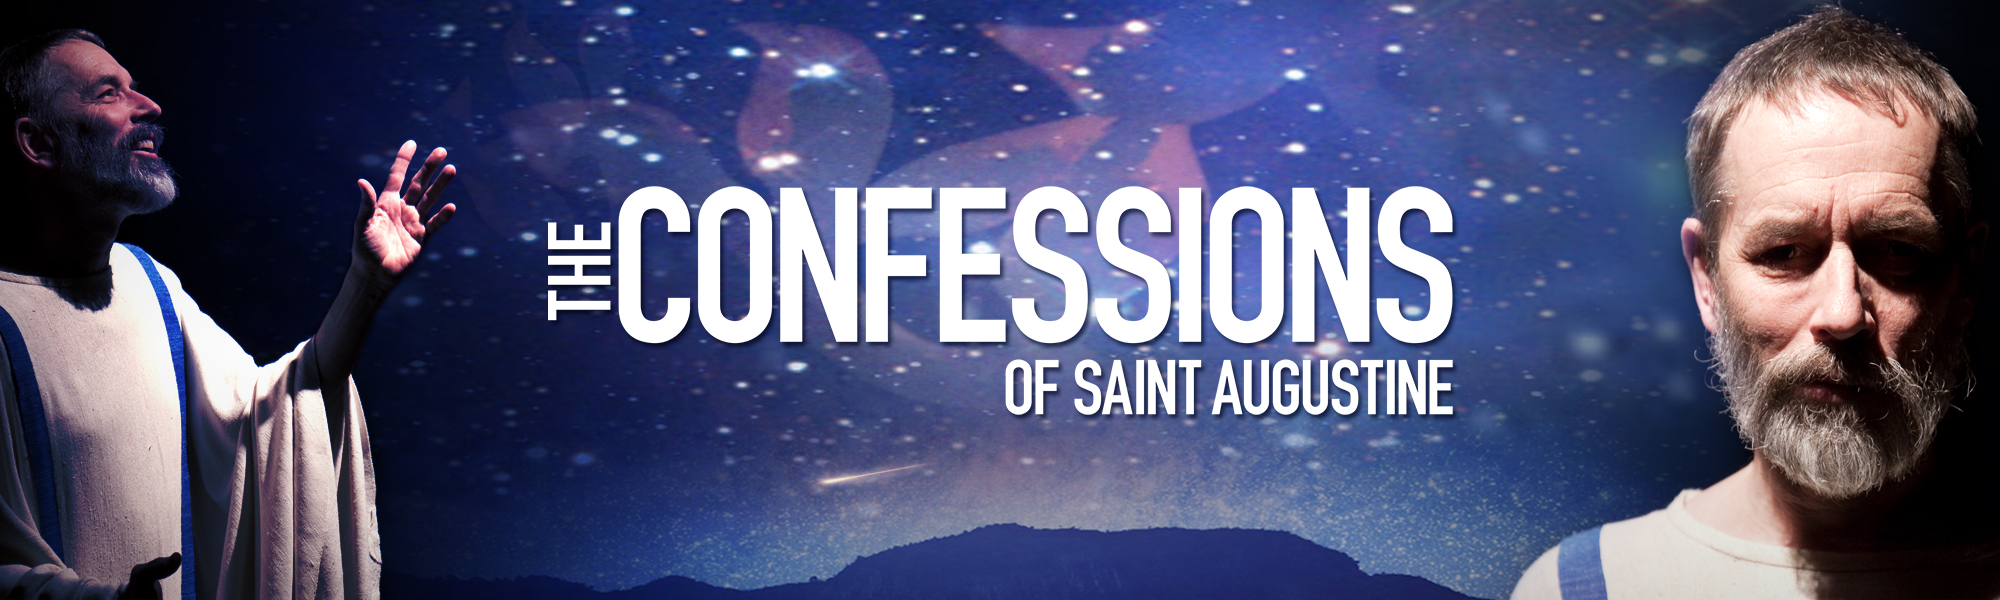 The Actor | The Confessions of Saint Augustine